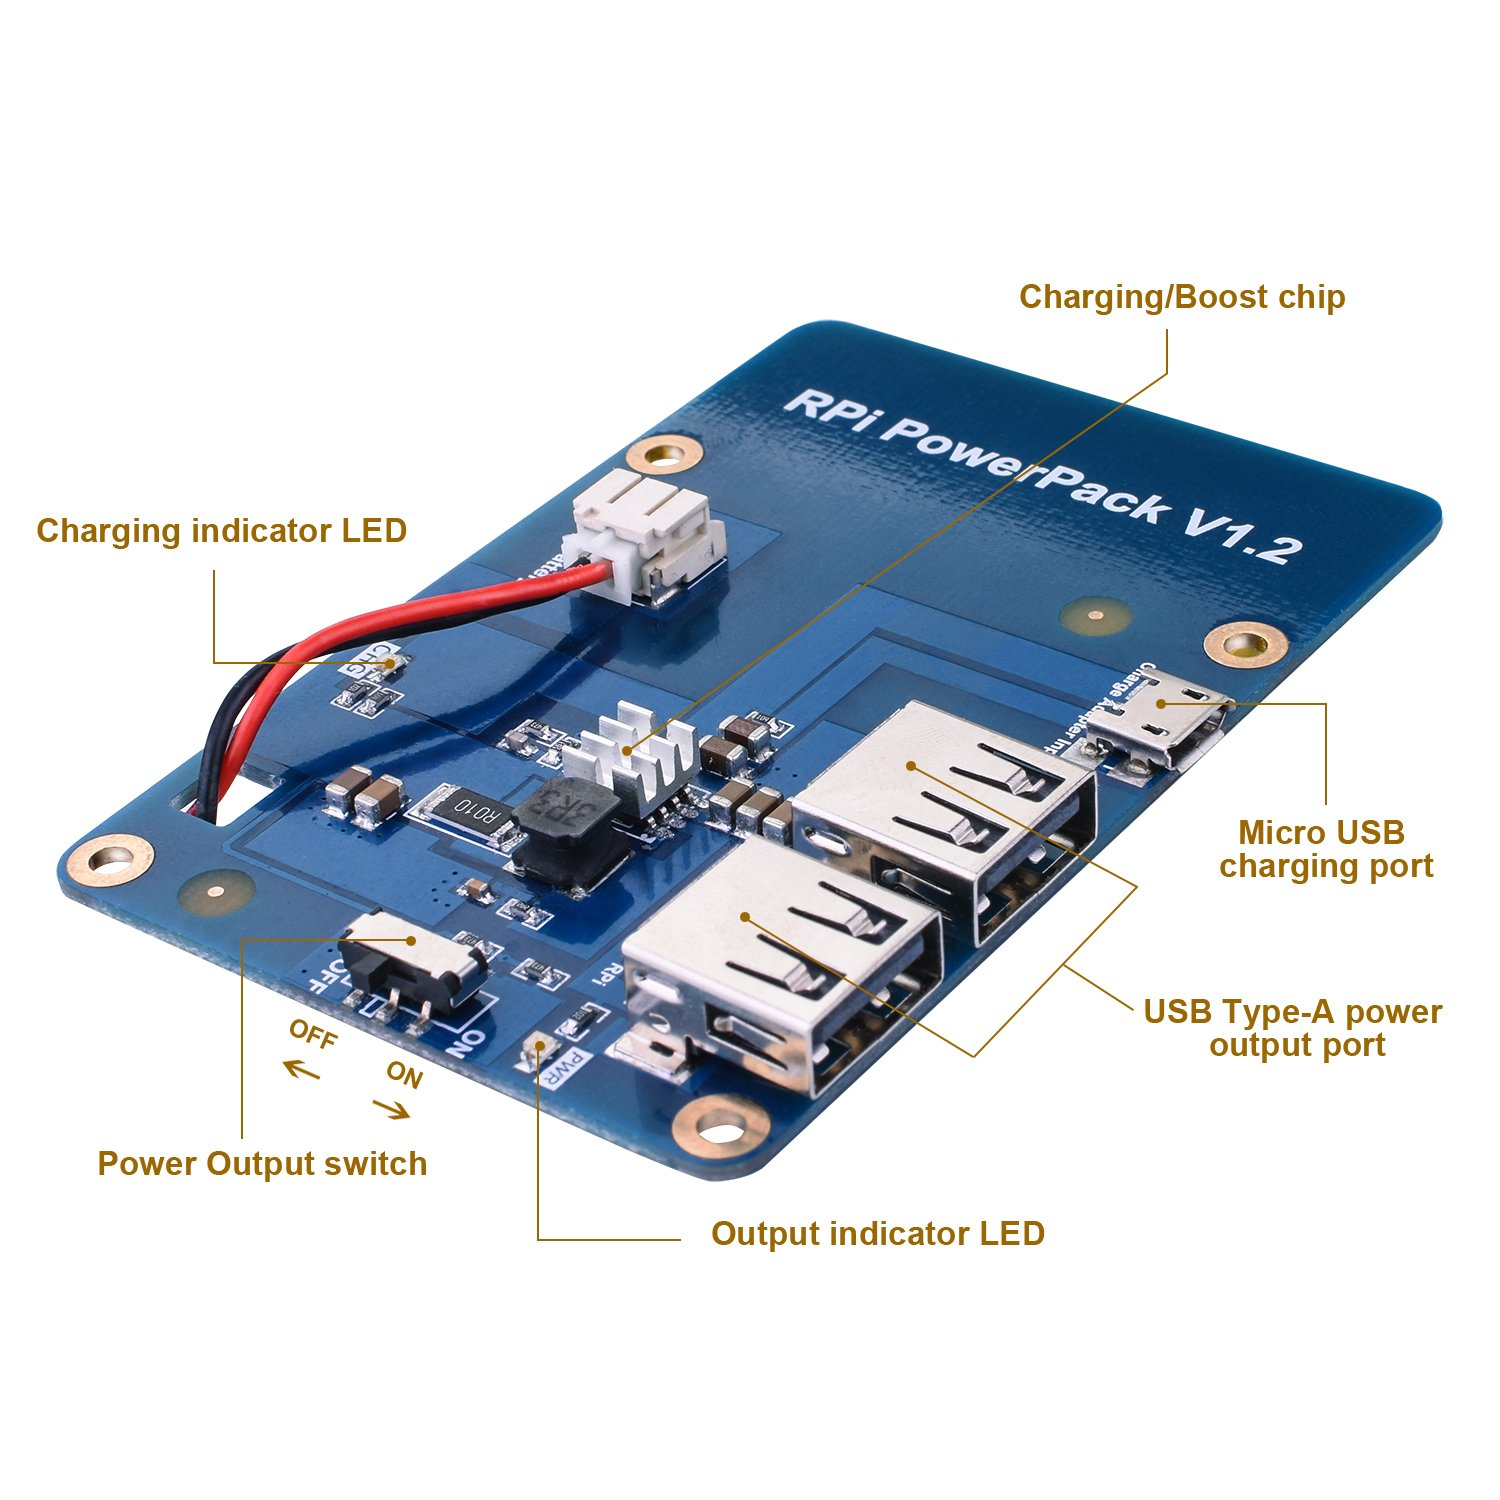 for Raspberry Pi Kuman Lithium Battery Pack Expansion Board RPi Power Pack Power Supply+ USB Cable + 2 layer Acrylic Board for Pi 3 2 Model B KY68C by Kuman (Image #3)